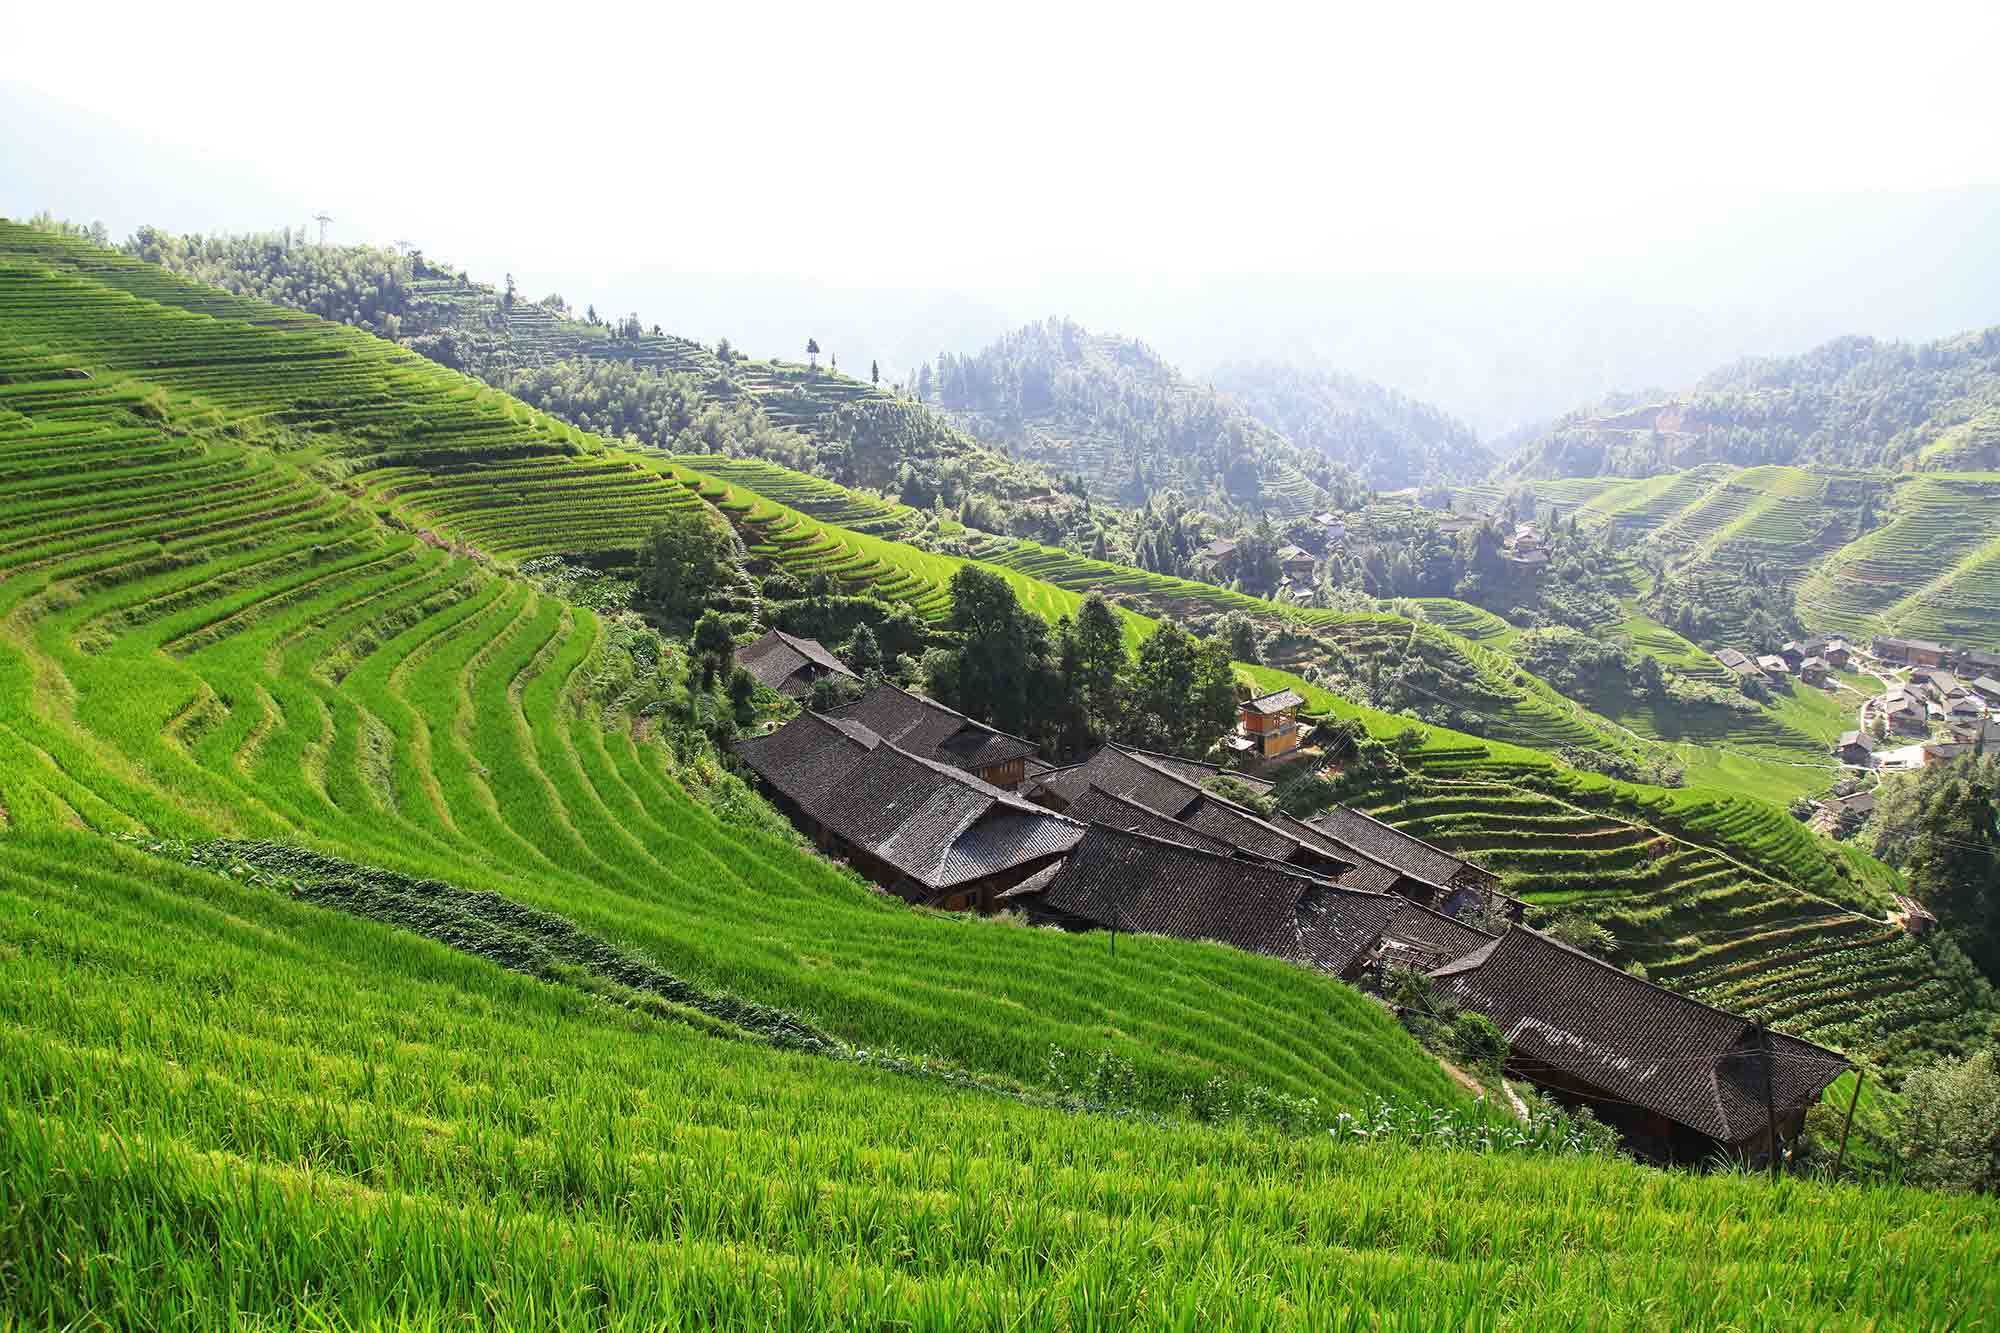 longji-rice-terrace-dazhai-dragon-backbone-china-5